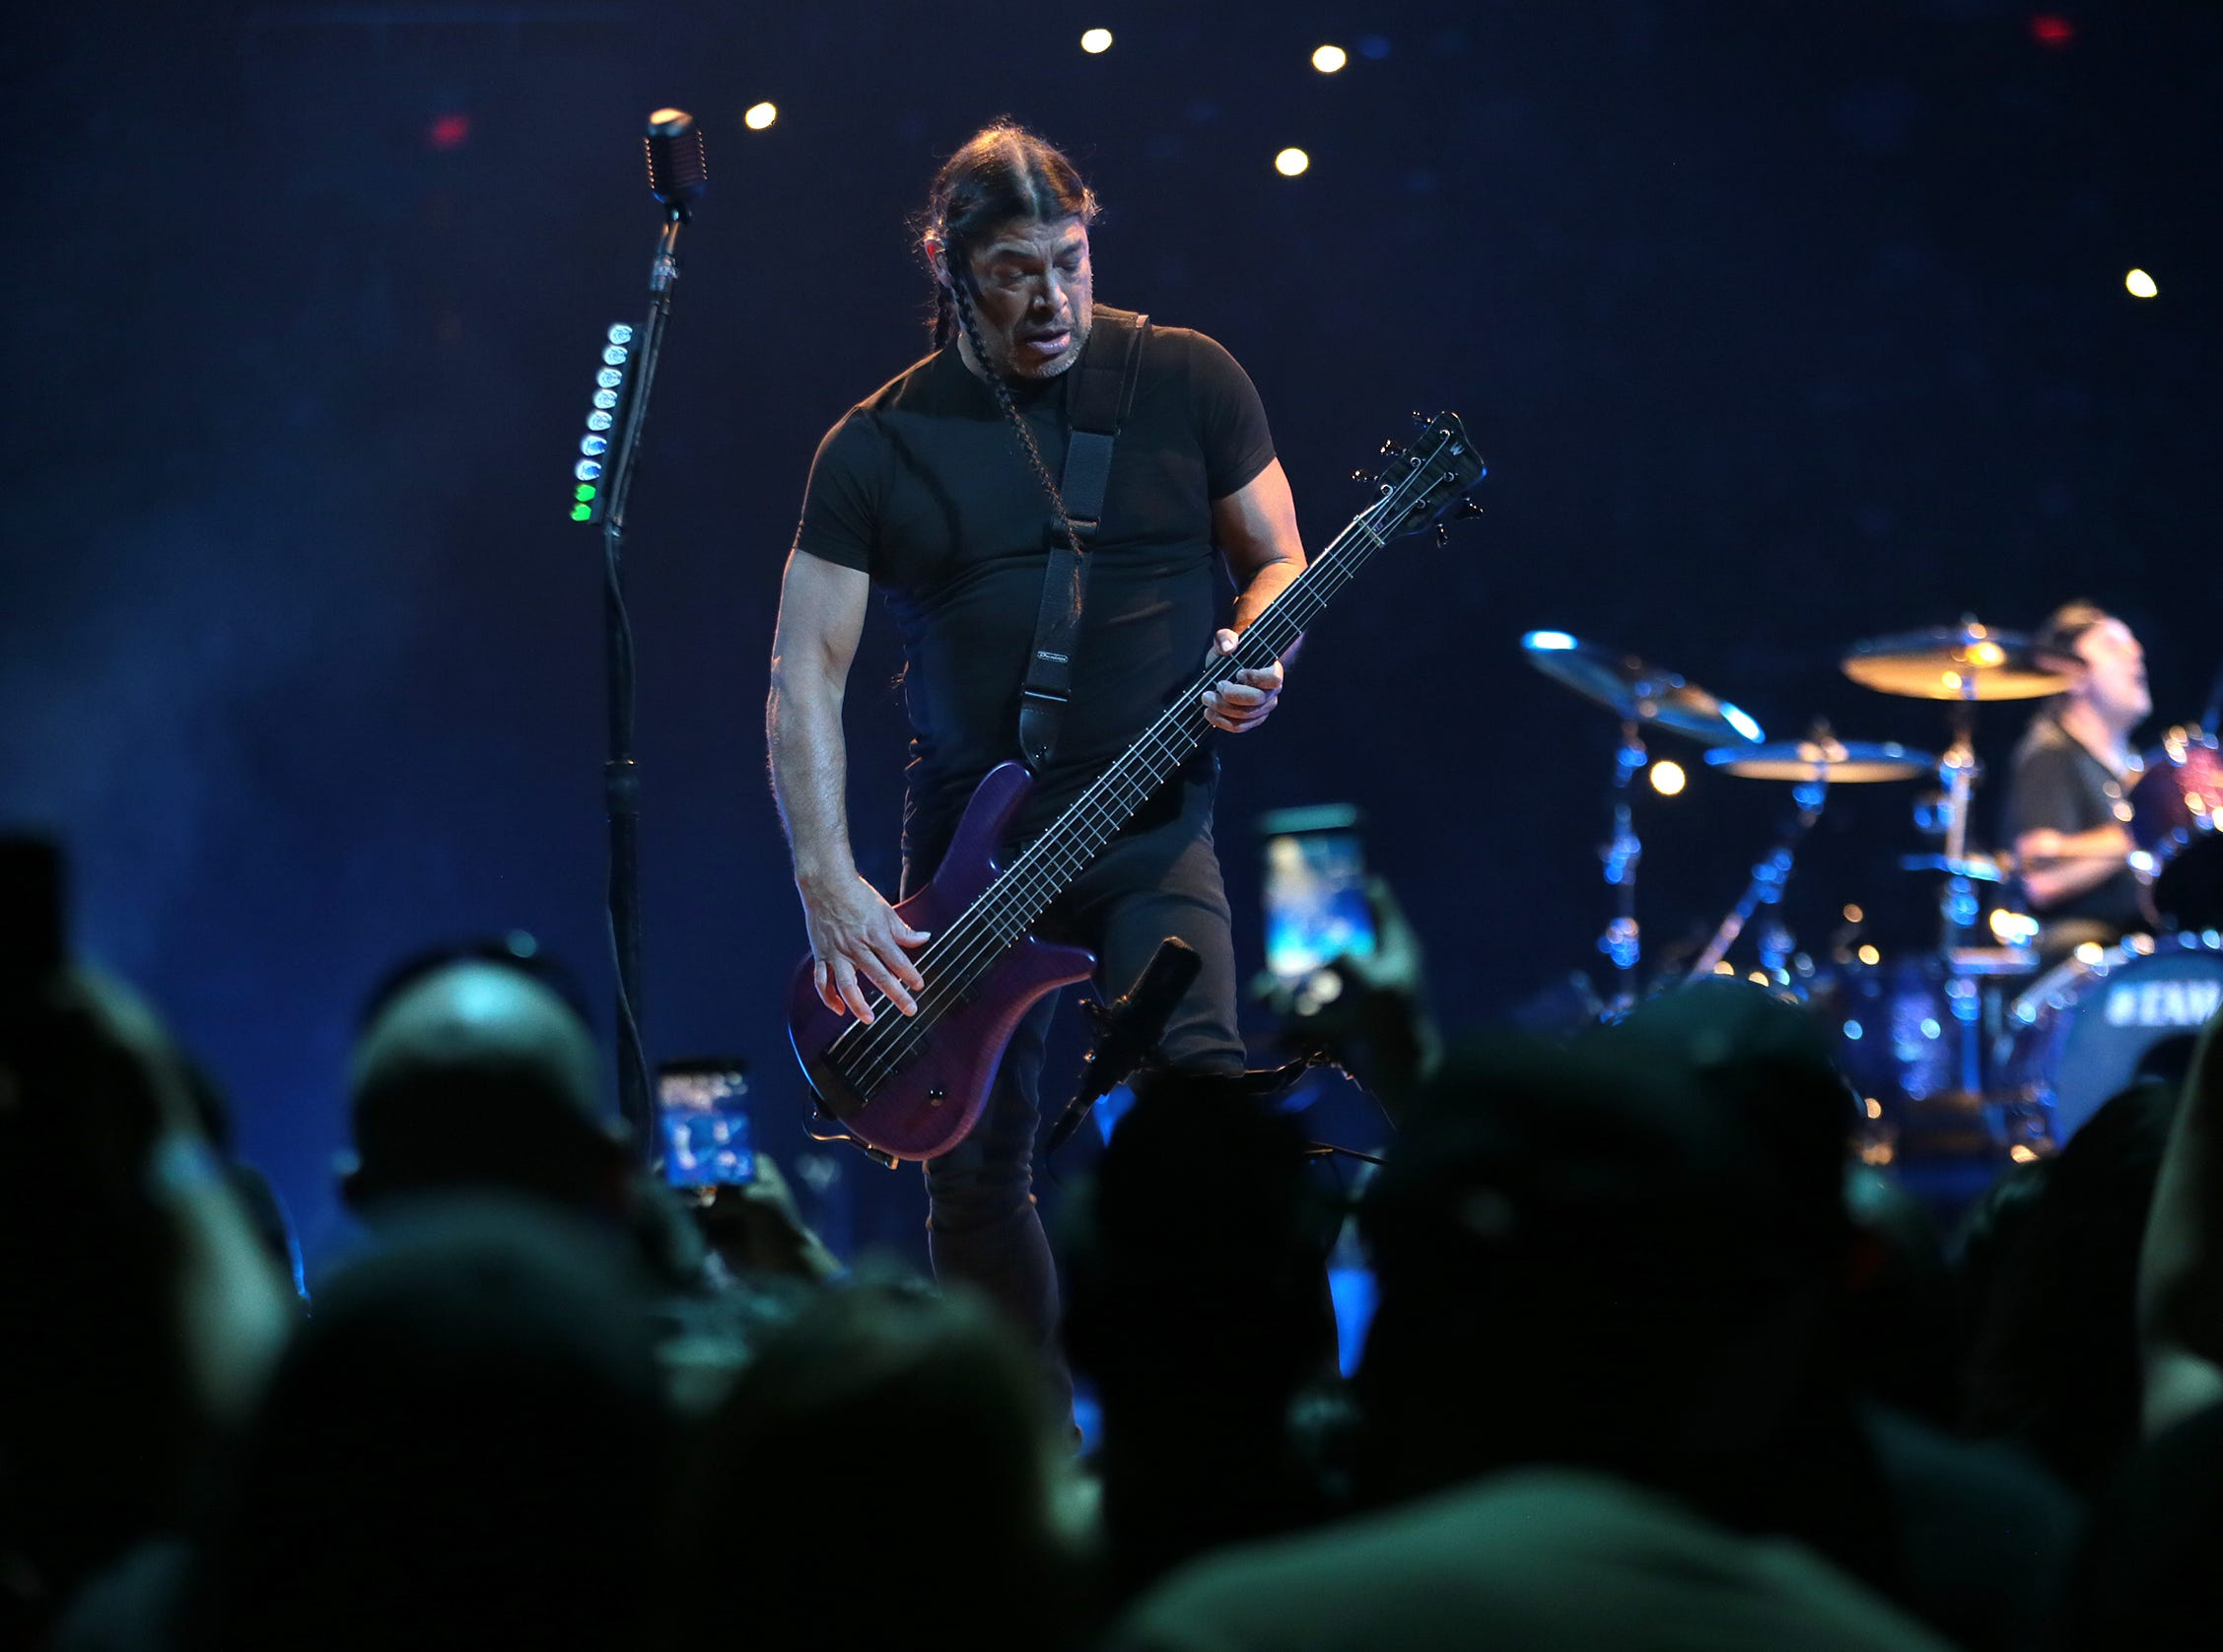 Metallica bassist Robert Trujillo performs during the rock group's sold-out concert at the Don Haskins Center on Thursday night, Feb. 28, 2019. The longtime metal band brought their long-awaited show to El Paso, along with comedian Jim Breuer to warm up the crowd.